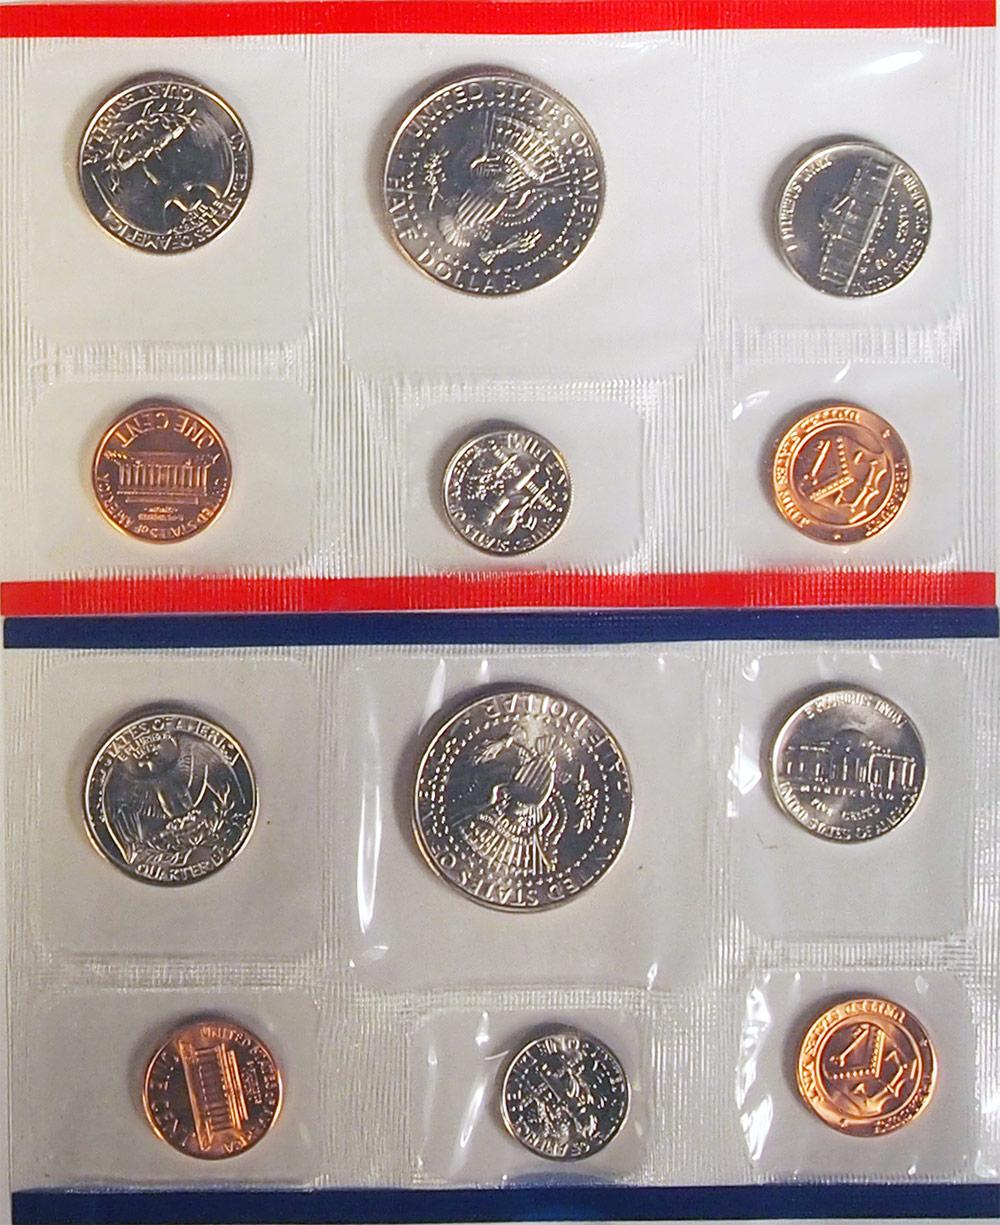 1995 Mint Set - All Original 10 Coin U.S. Mint Uncirculated Set